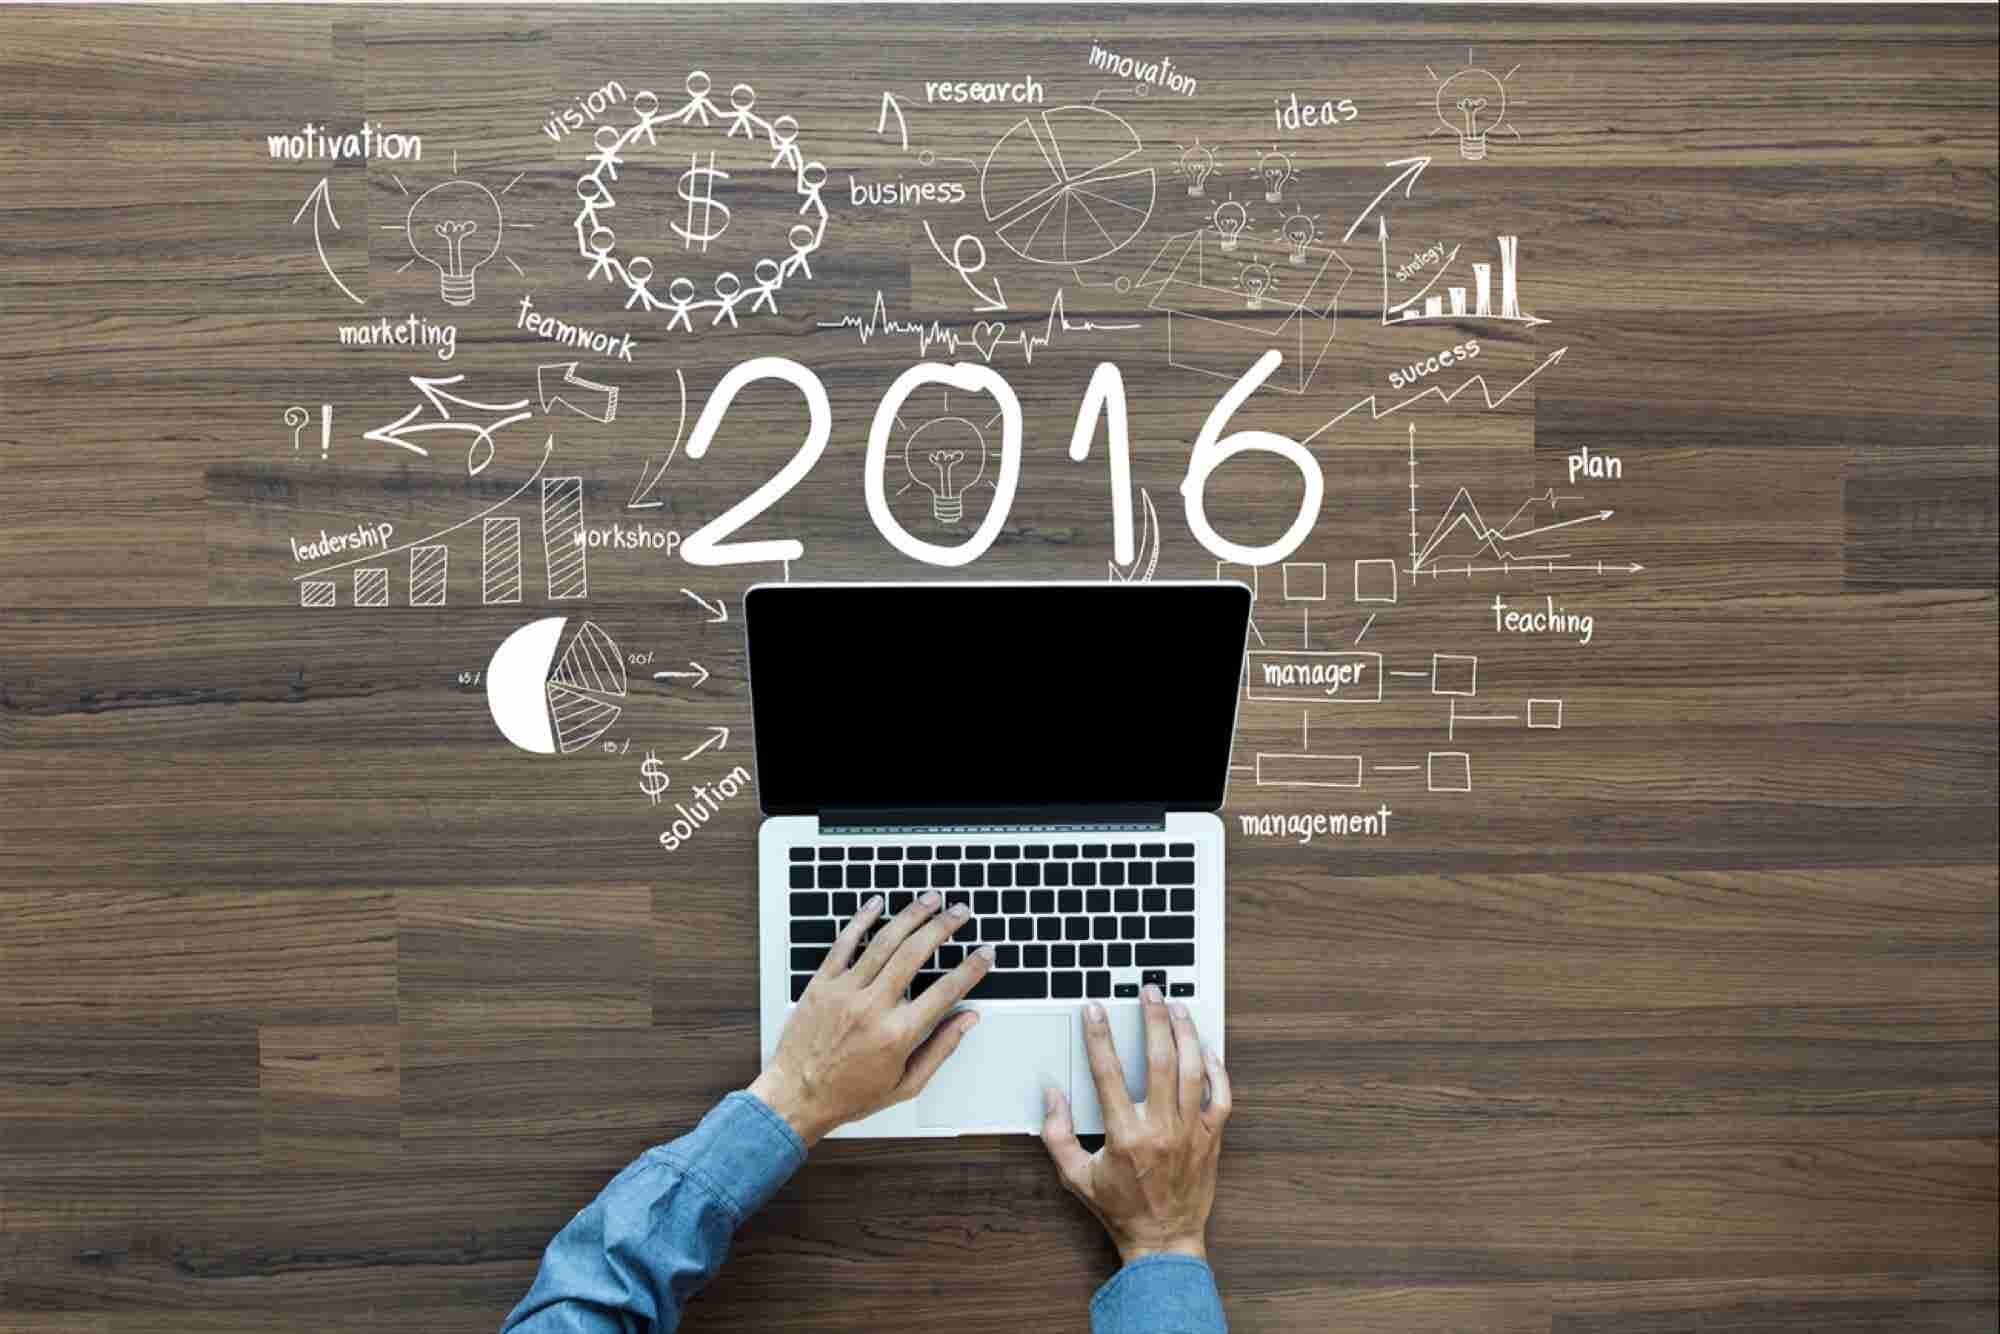 5 Digital-Marketing Tactics to Ditch in 2016